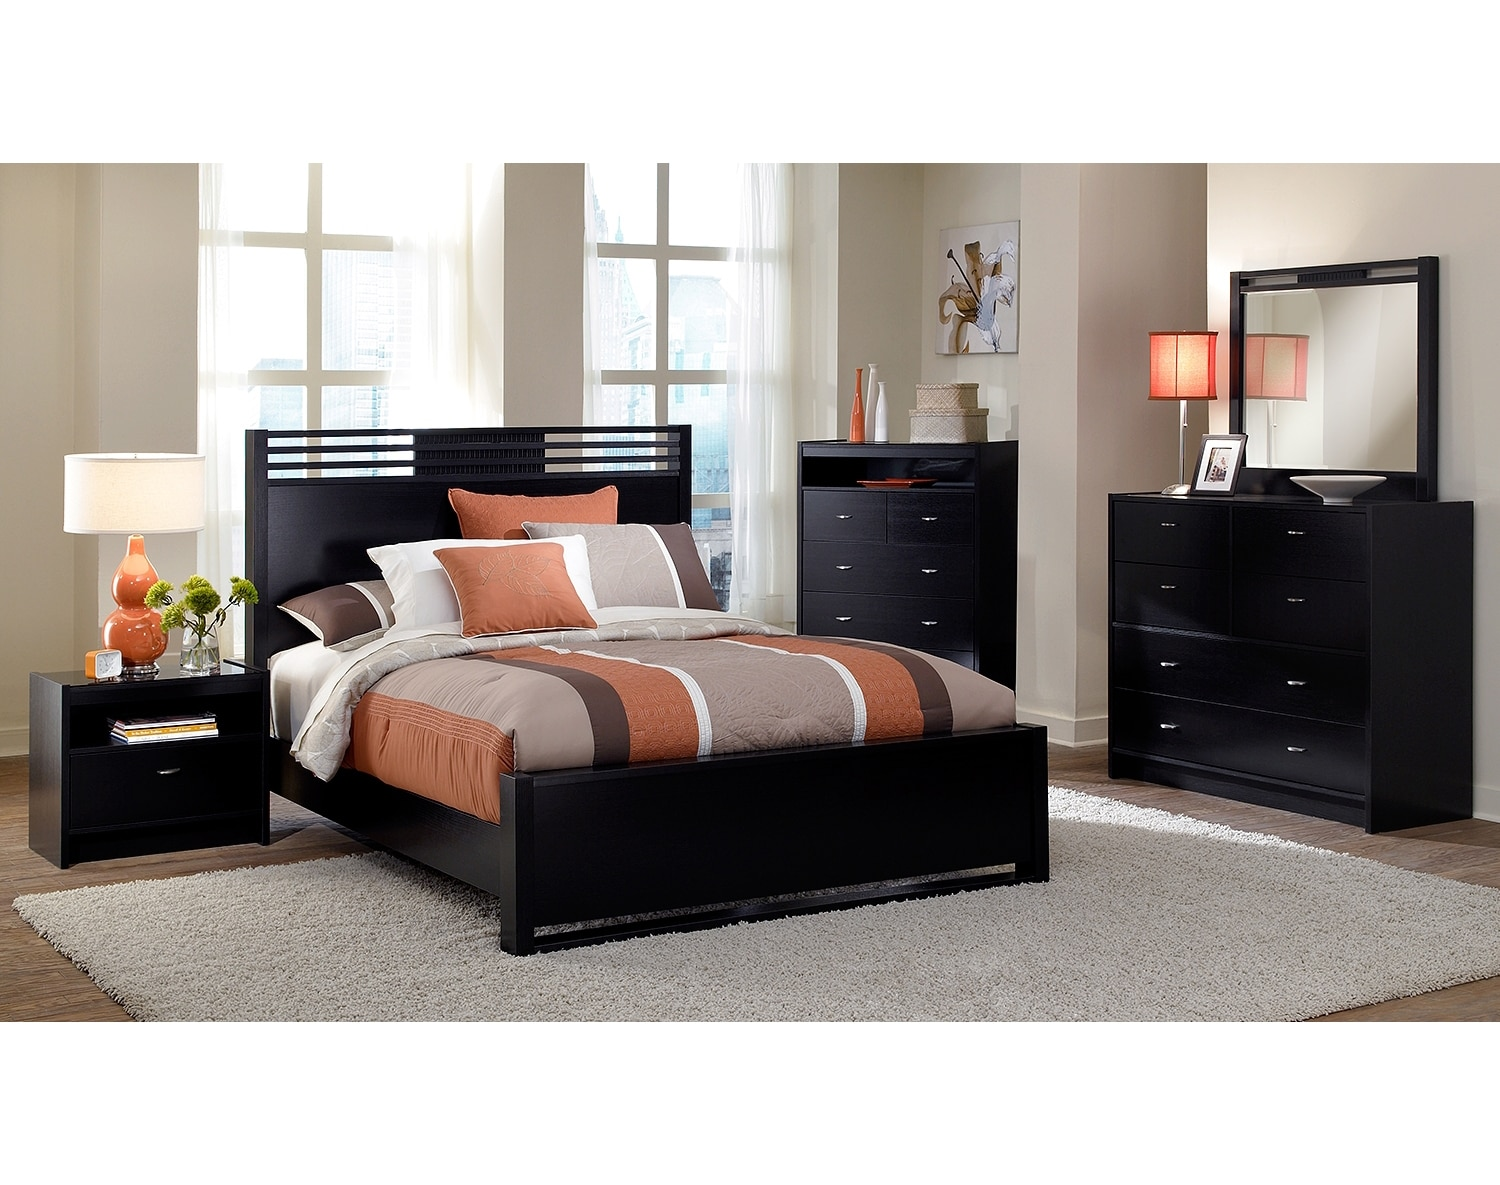 Bedroom Furniture - The Kendall Espresso Collection - Queen Bed